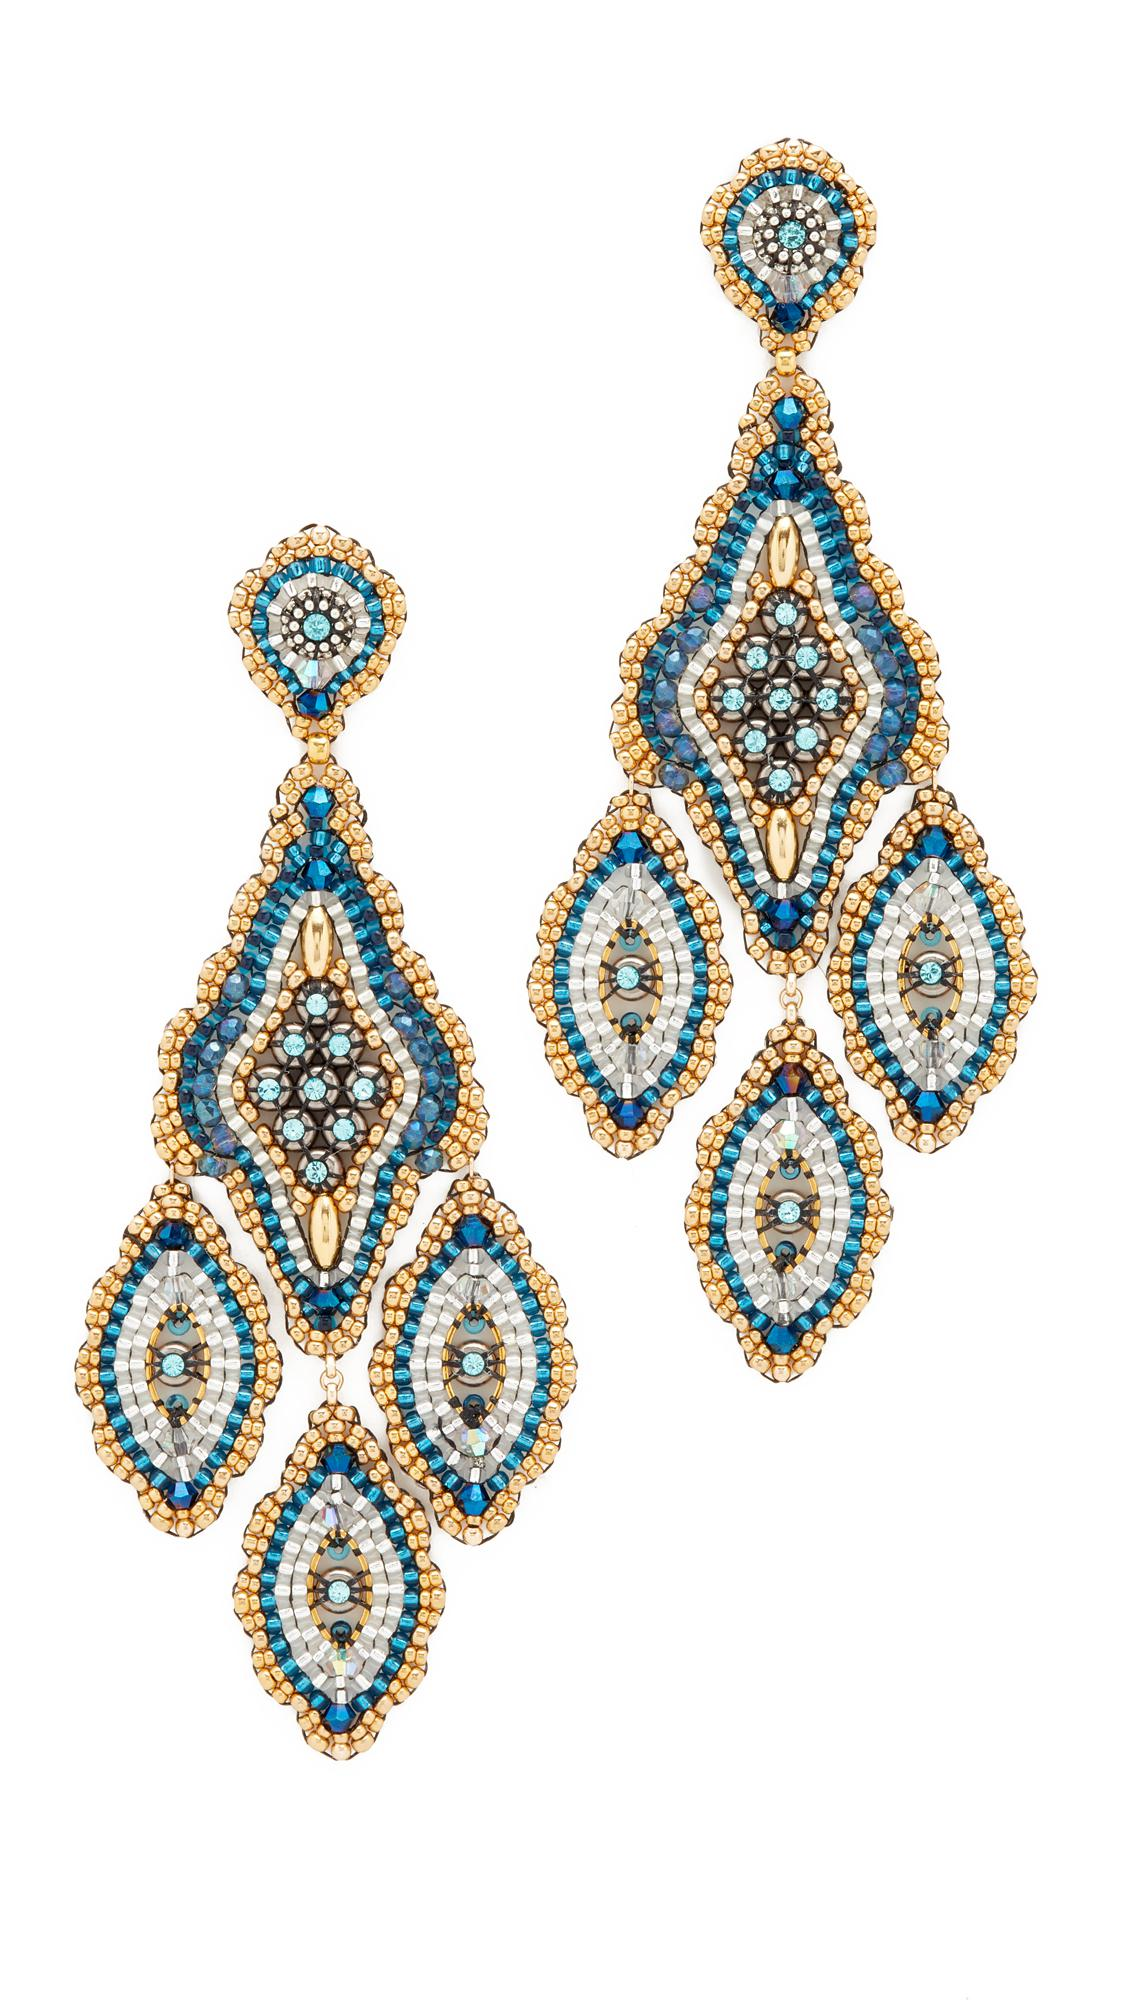 Miguel ases Beaded Chandelier Earring in Blue